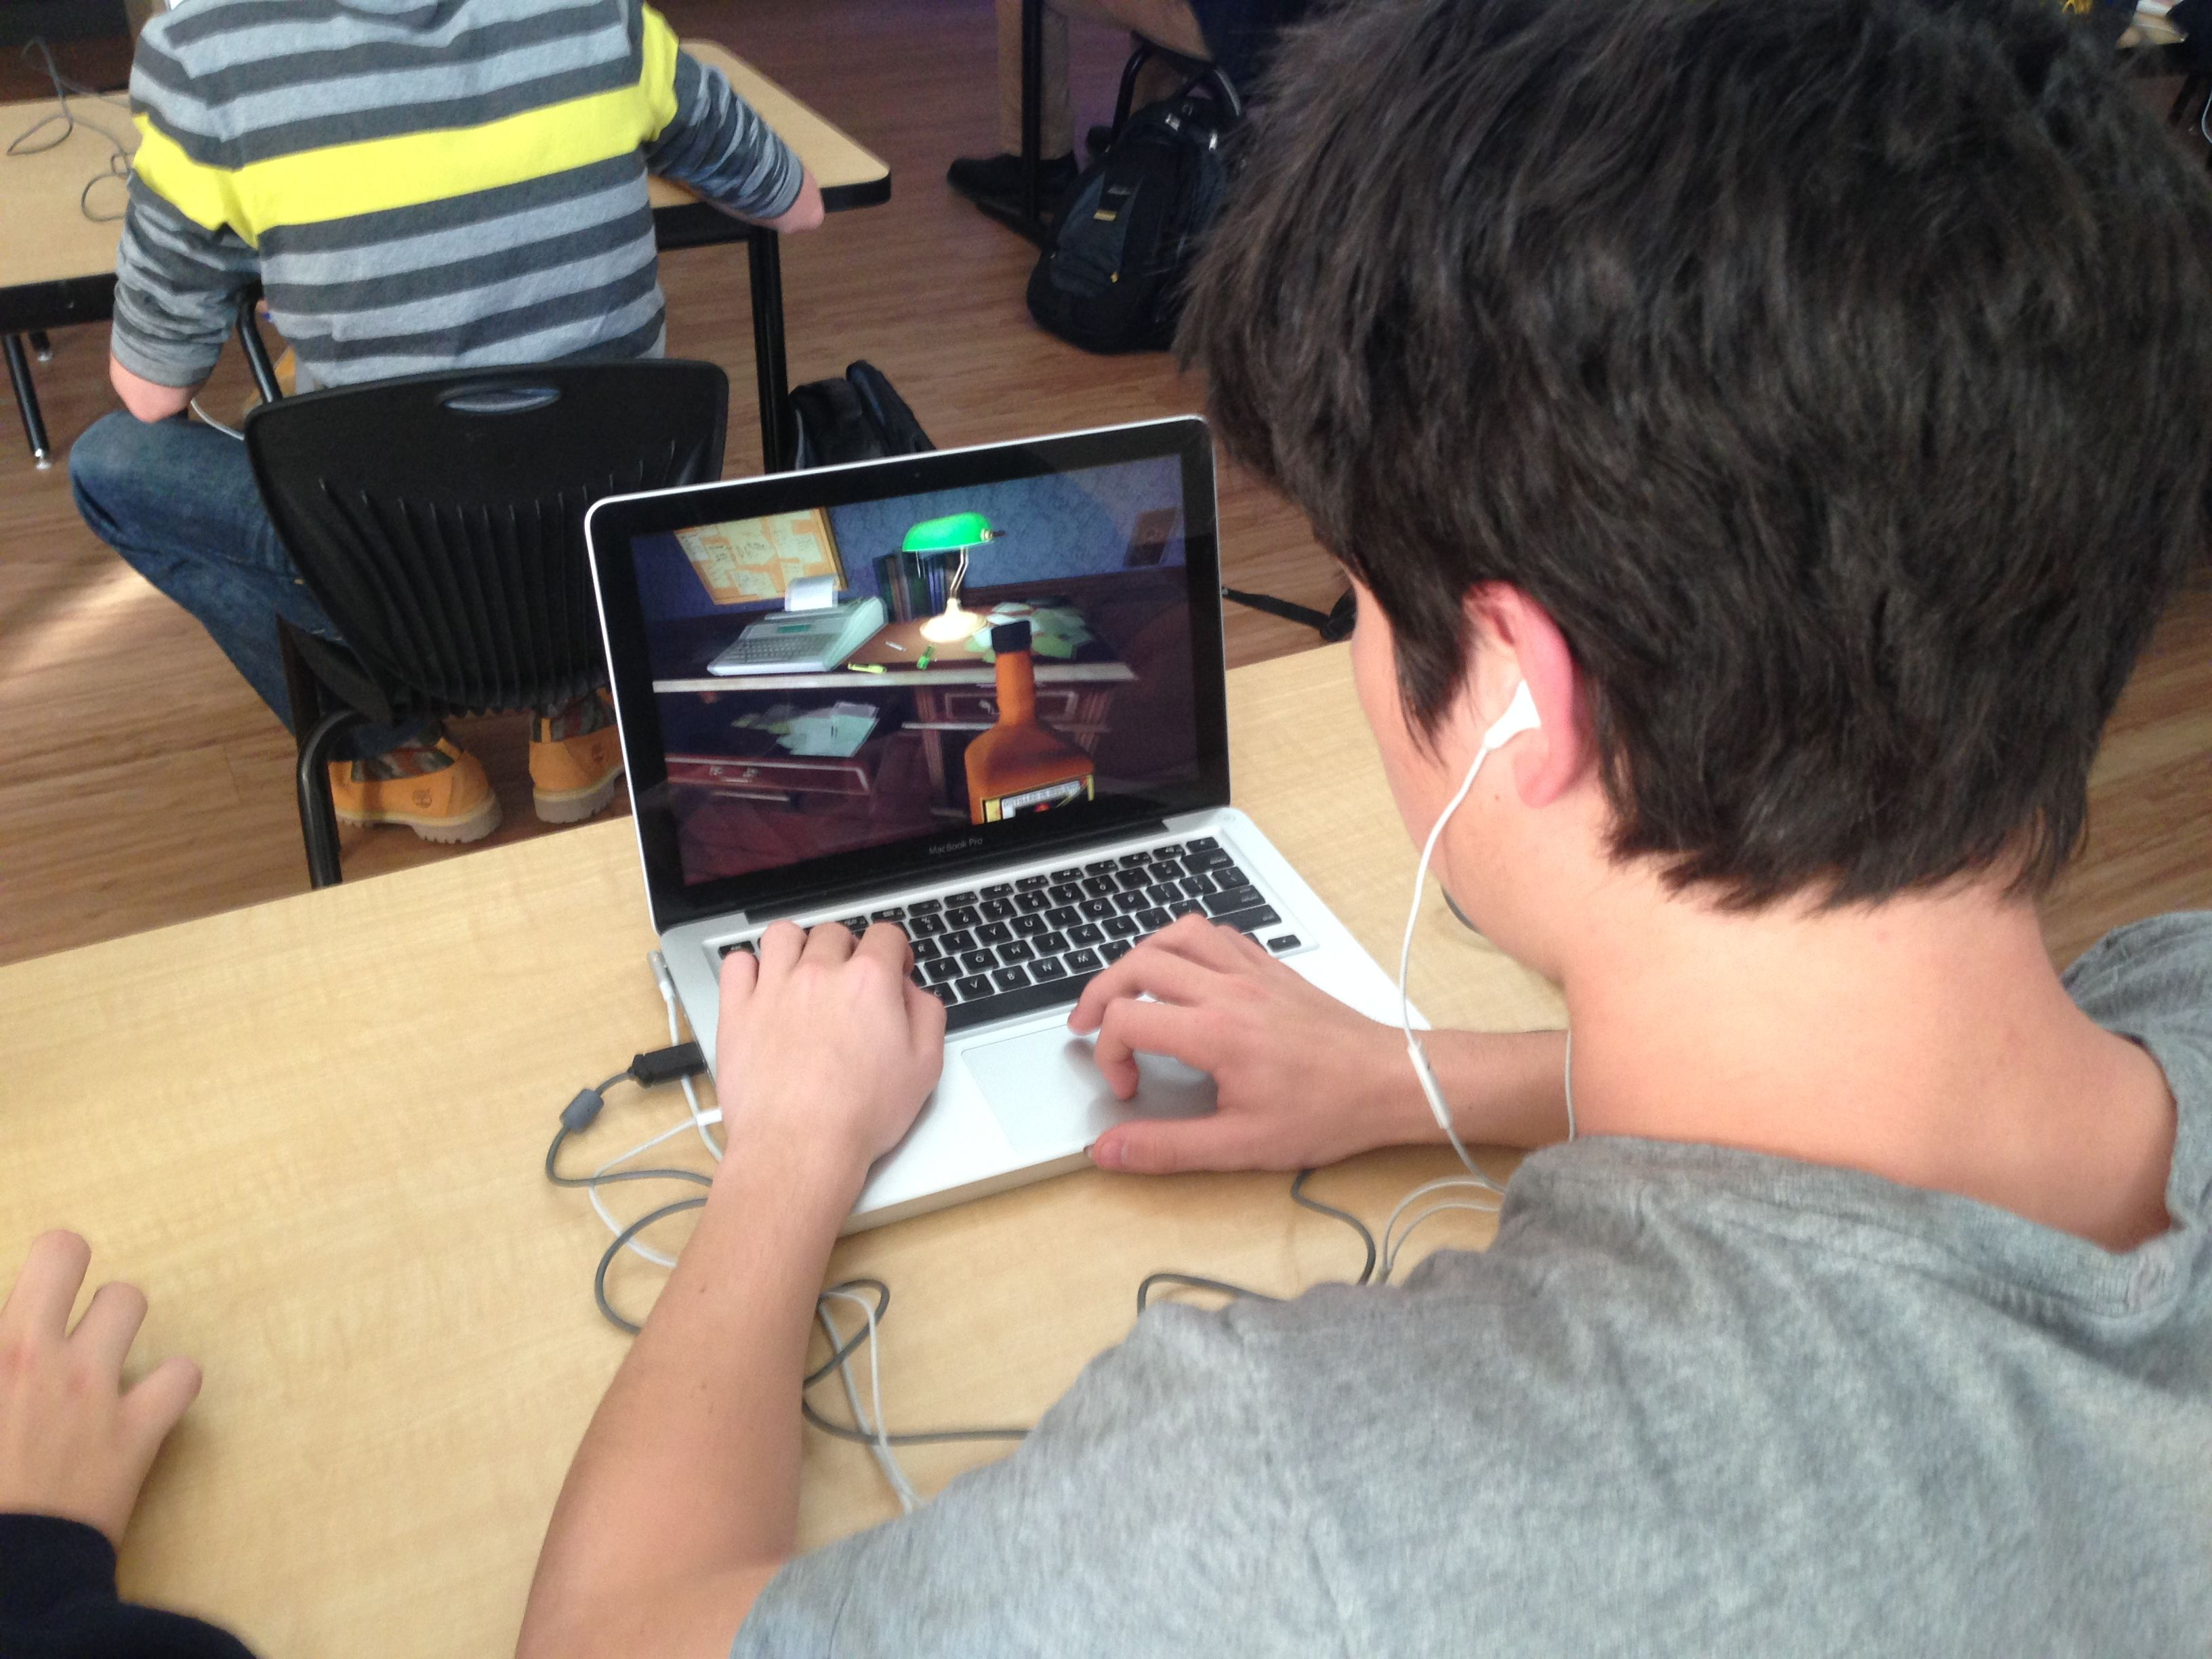 Gone Home A Video Game as a Tool for Teaching Critical